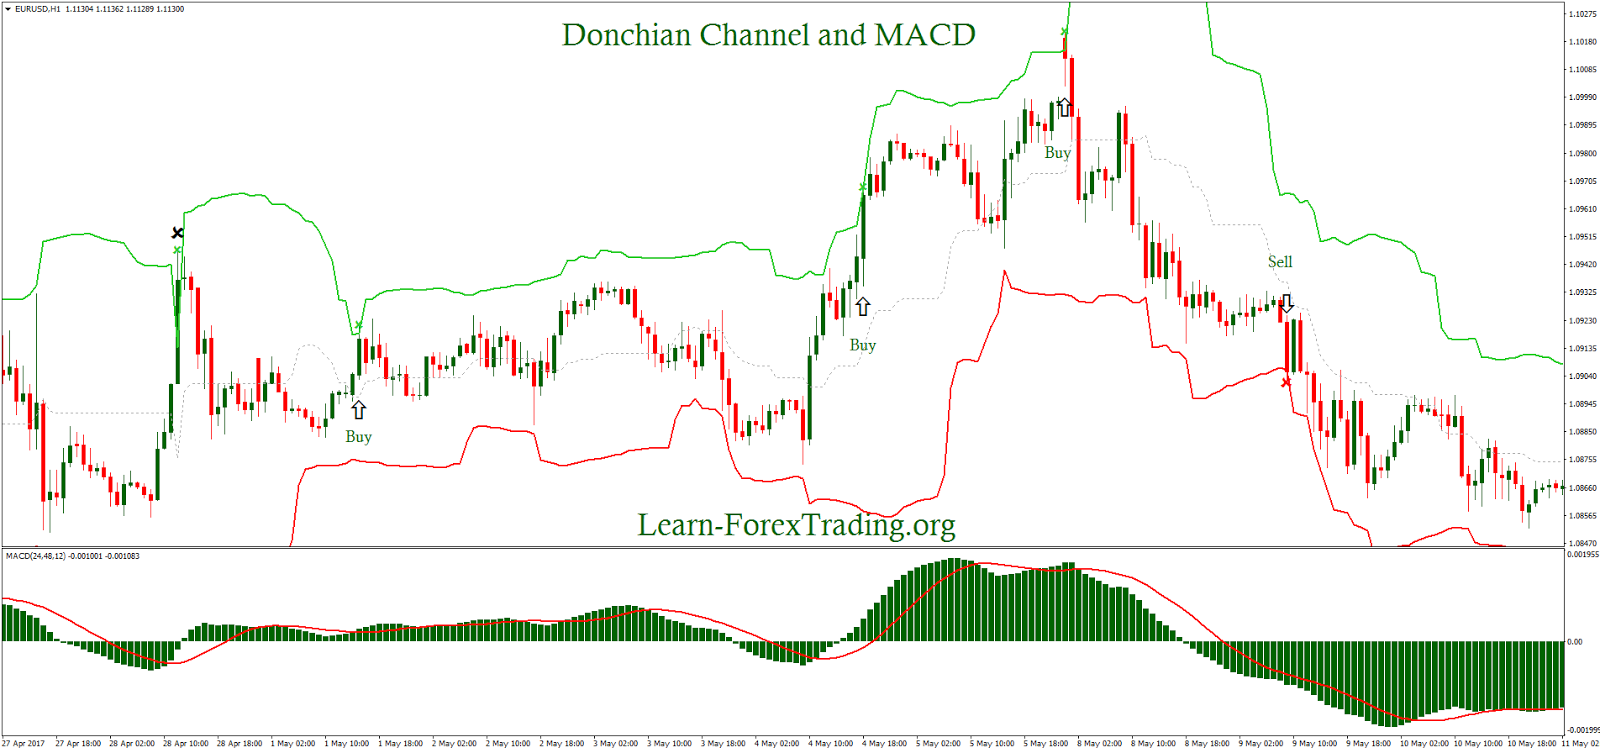 Donchian channel trading system